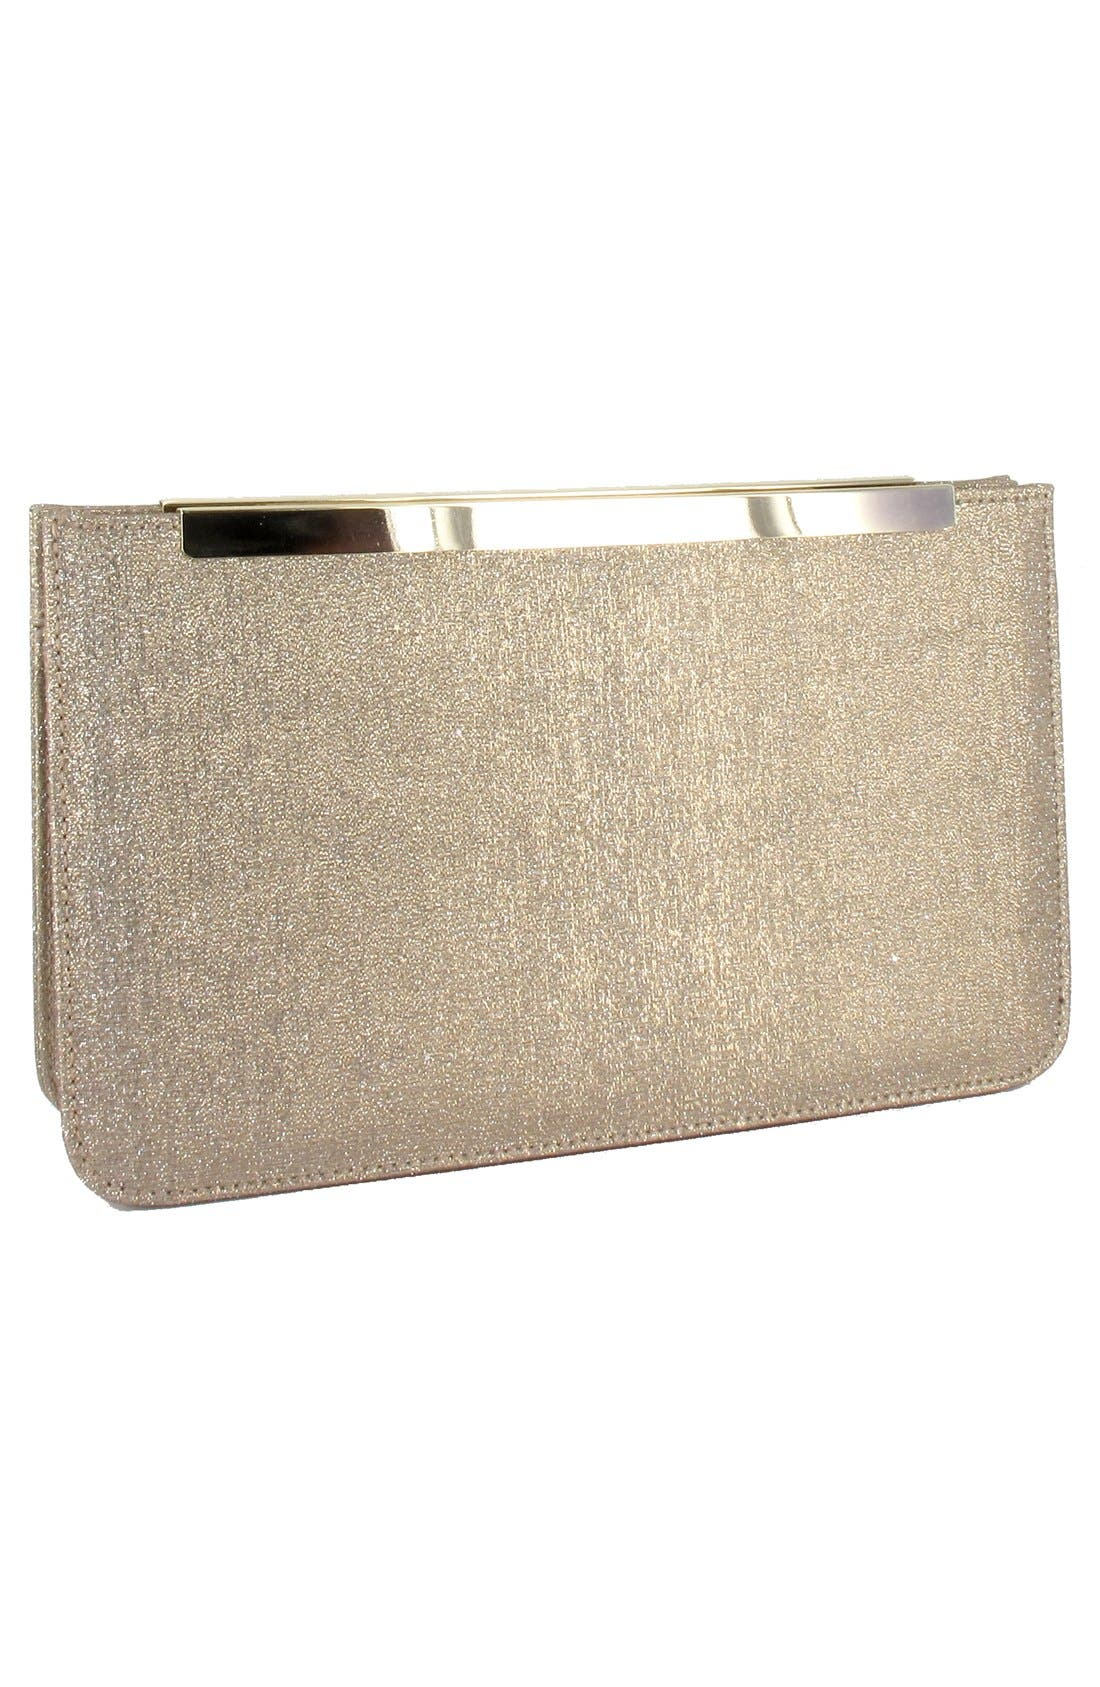 Metallic Clutch,                             Alternate thumbnail 3, color,                             Sand